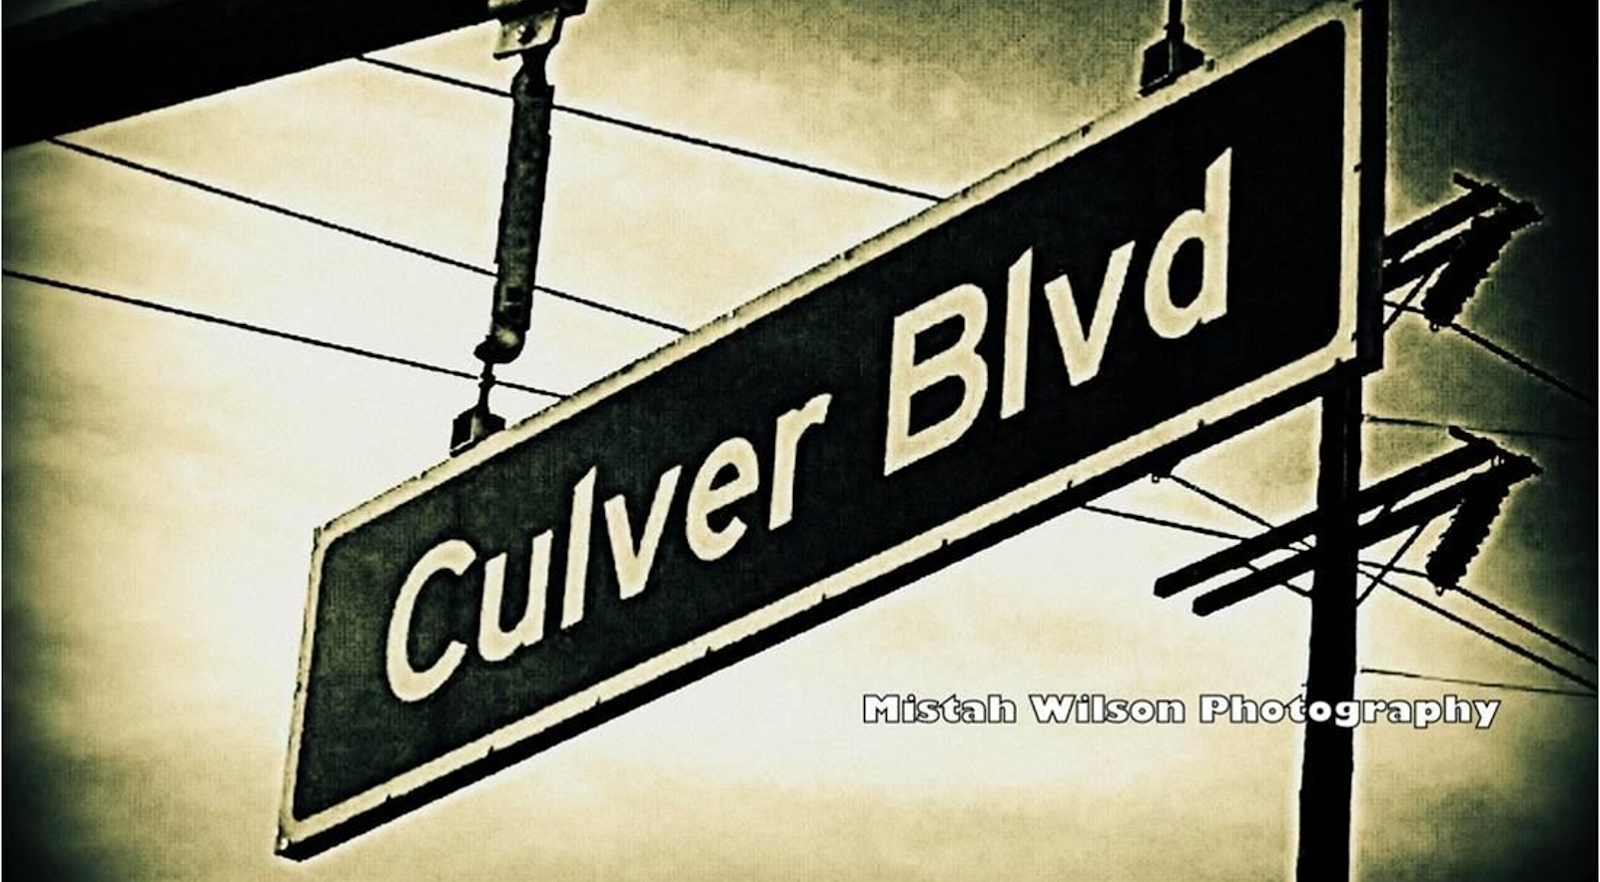 Culver City, CA